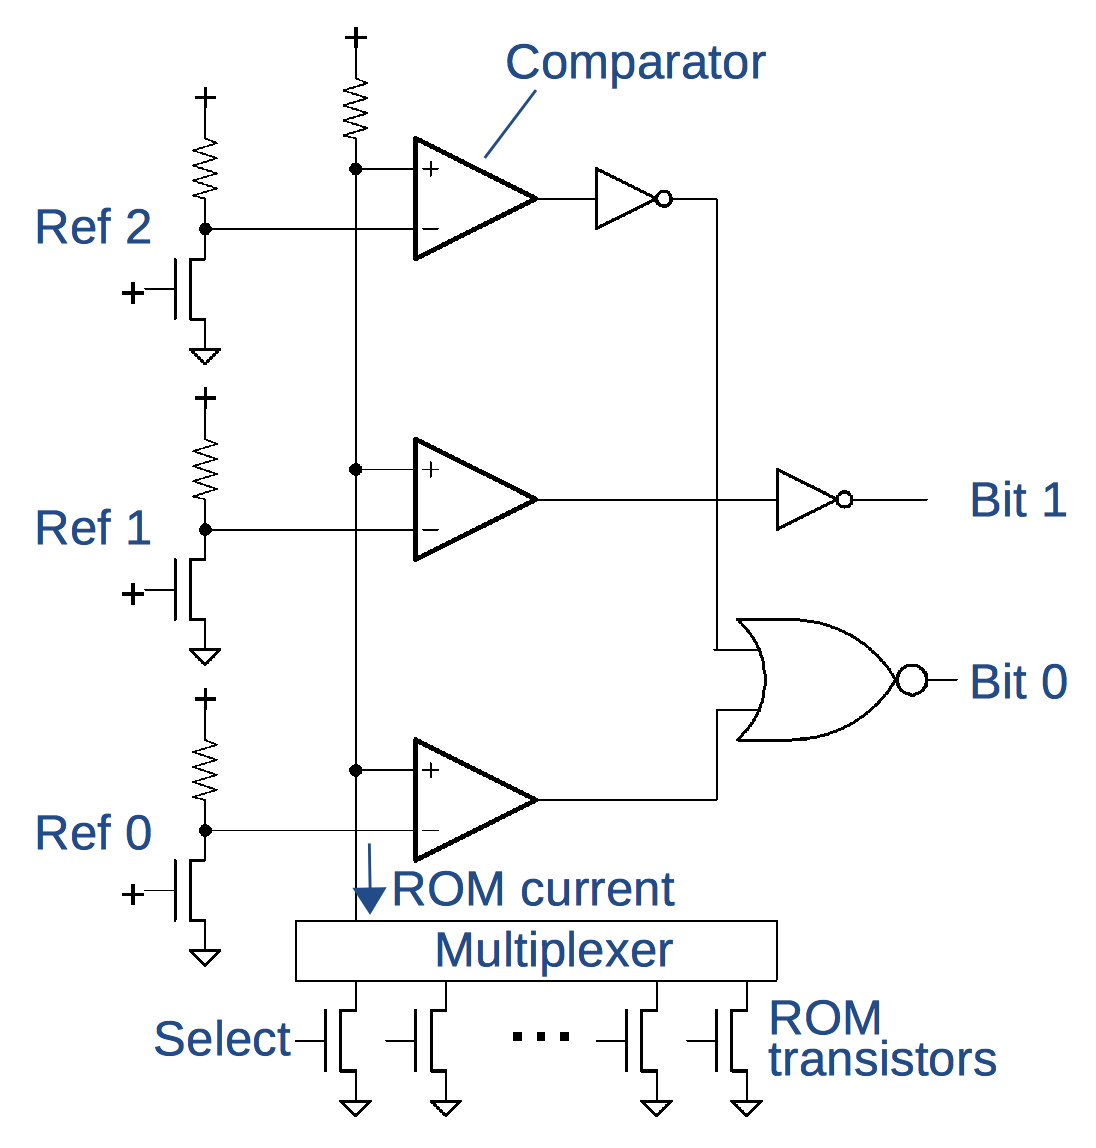 Two Bits Per Transistor High Density Rom In Intels 8087 Floating Wiring Diagram The Circuit To Read From A Cell